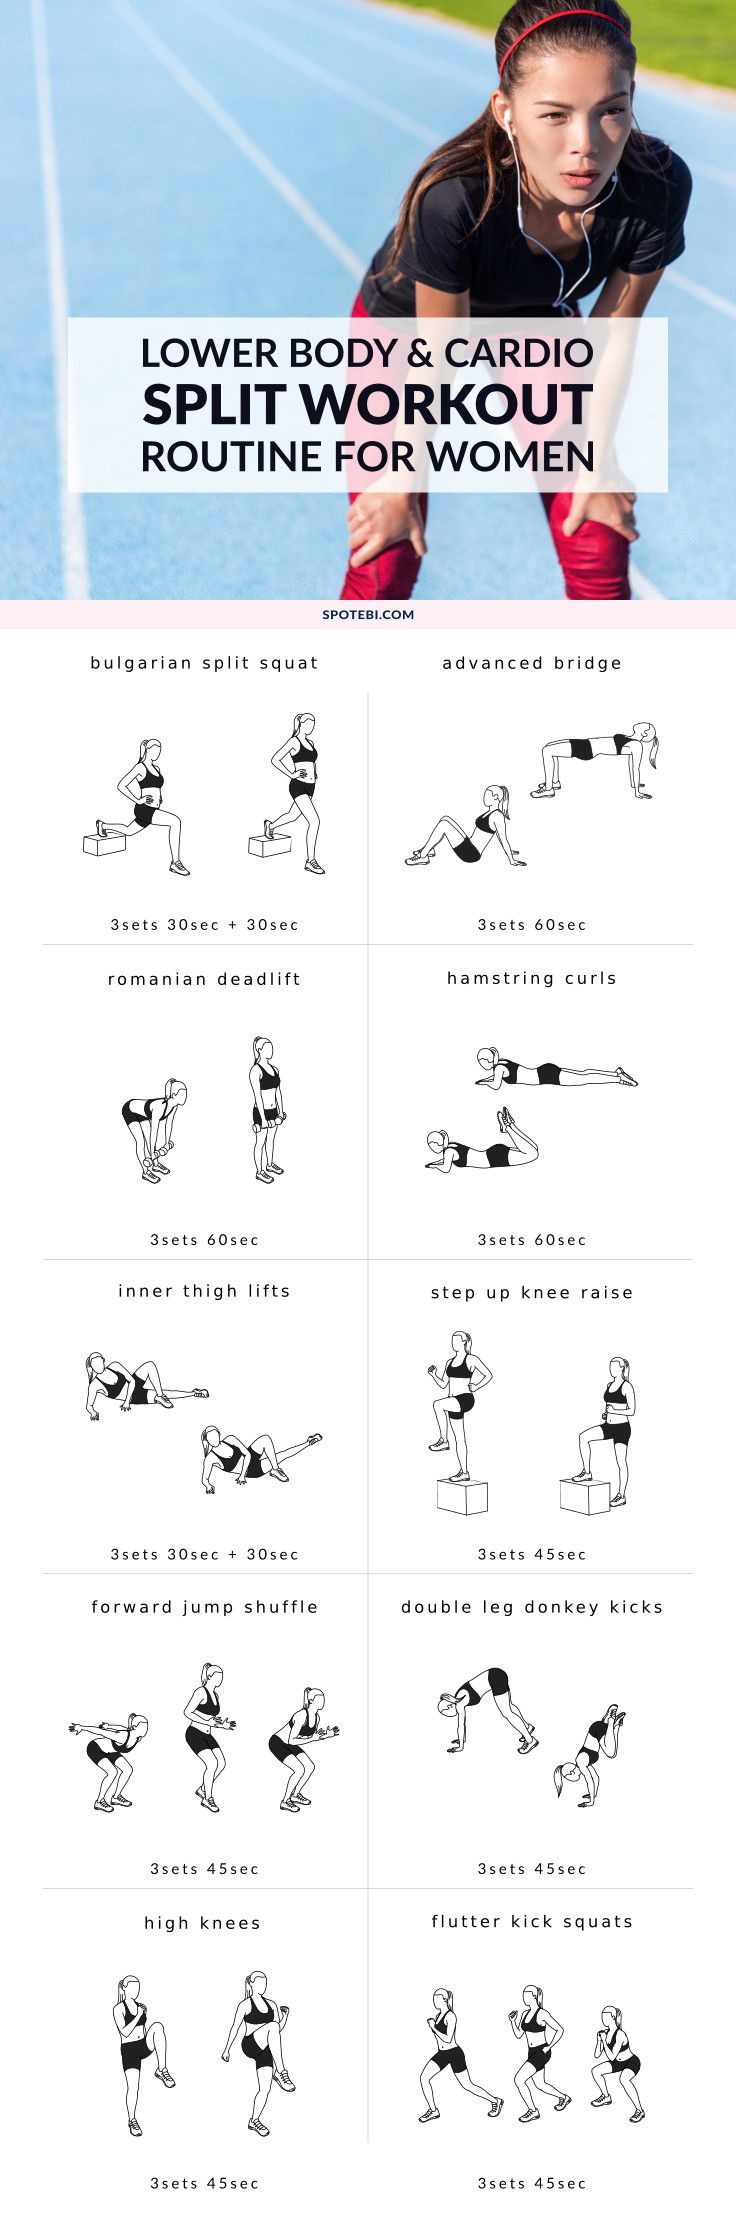 Exercise smart and keep burning calories even after your workout is over with this lower body and cardio Split workout. Lift, tone and tighten your booty, legs and thighs and show off your hard work in no time! http://www.spotebi.com/workout-routines/lower-body-cardio-split-workout/